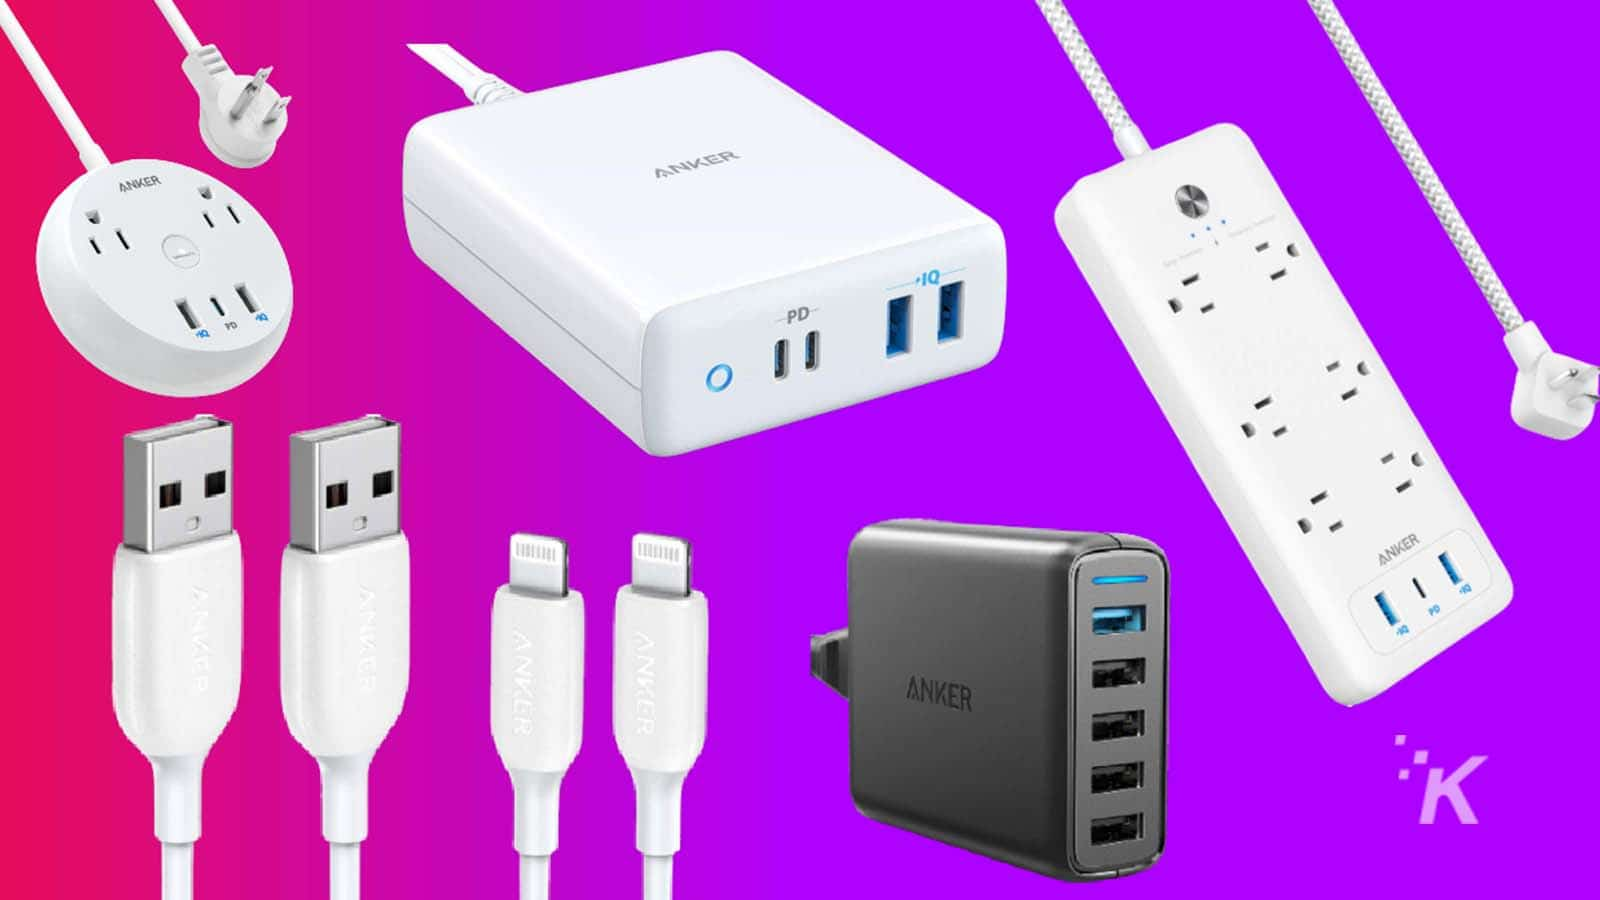 anker-deal-knowtechie